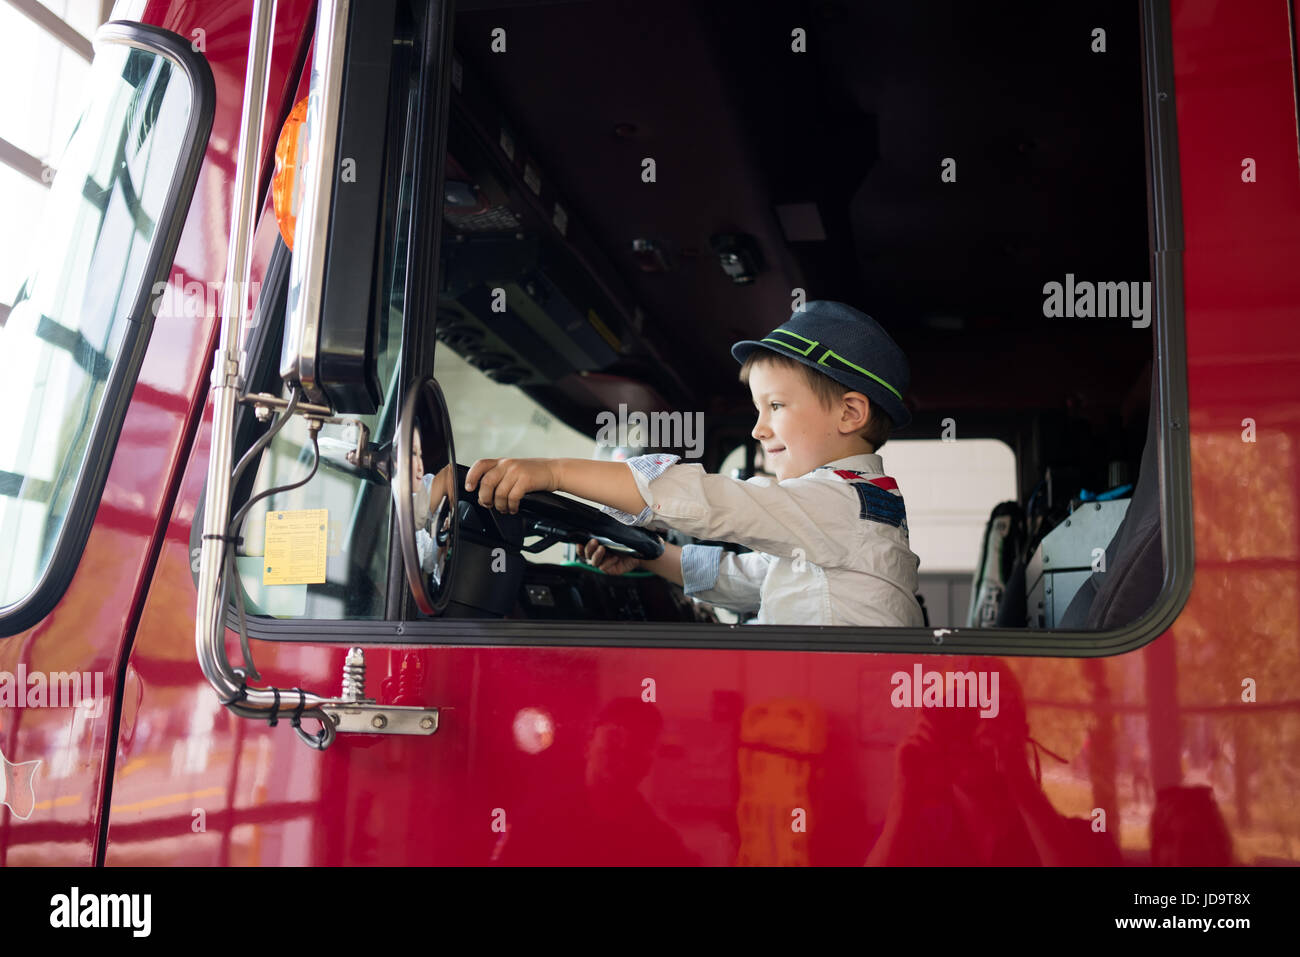 Young boy in driving seat of truck, holding steering wheel, smiling - Stock Image